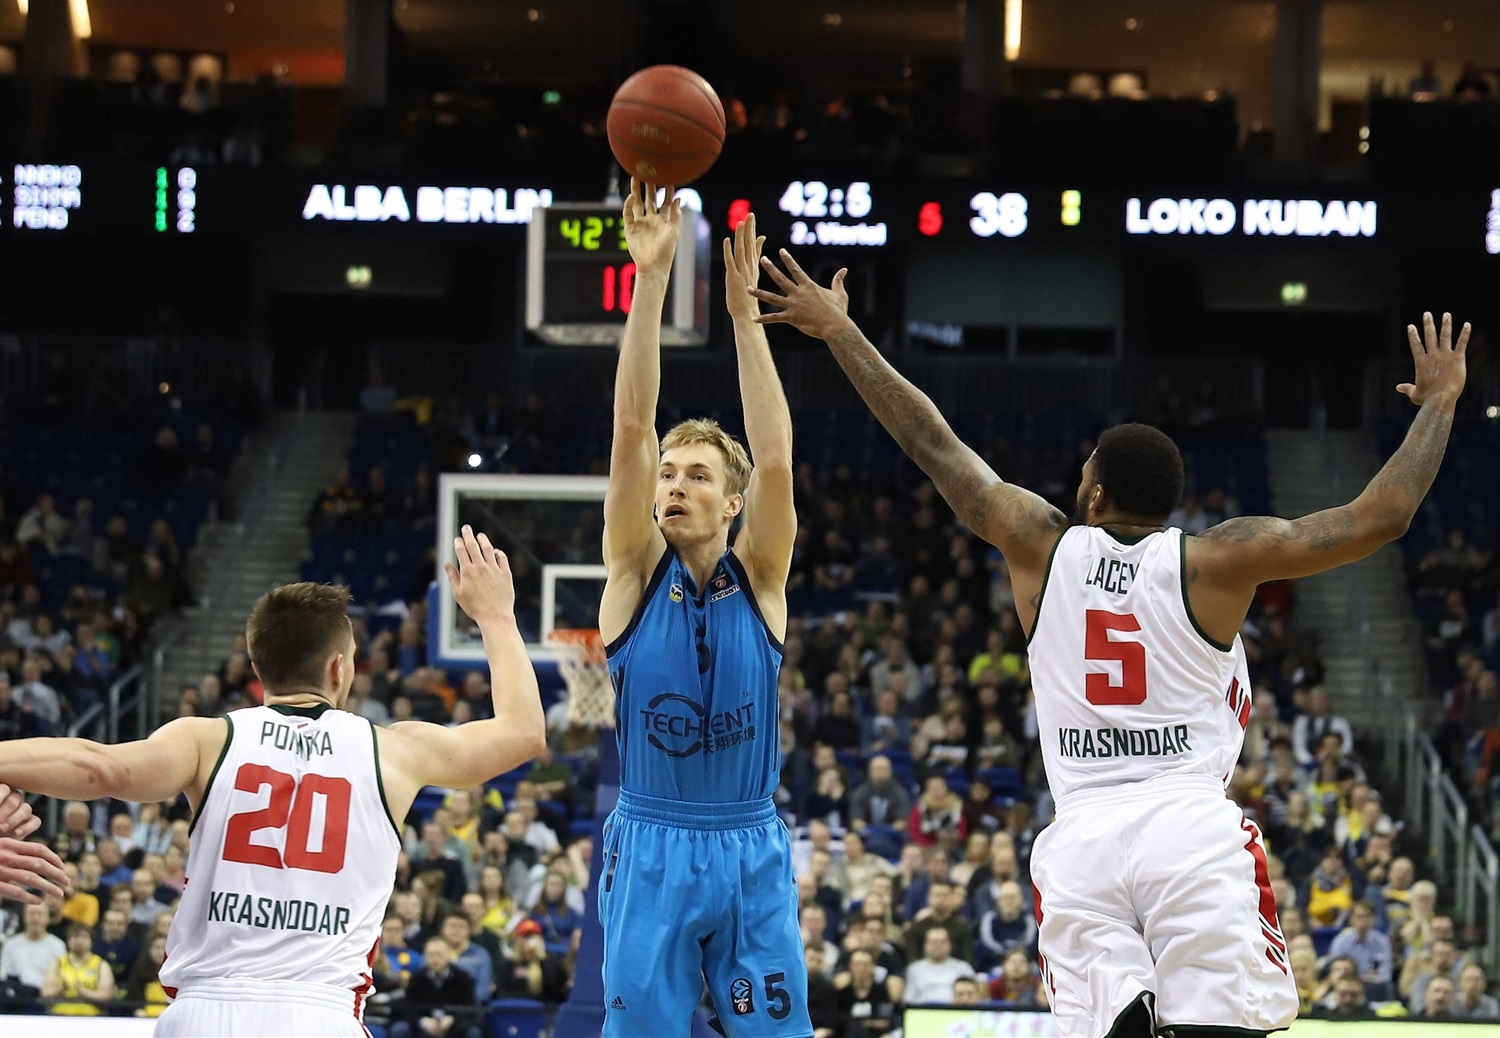 Niels Giffey - ALBA Berlin (photo Andreas Knopf - ALBA) - EC18